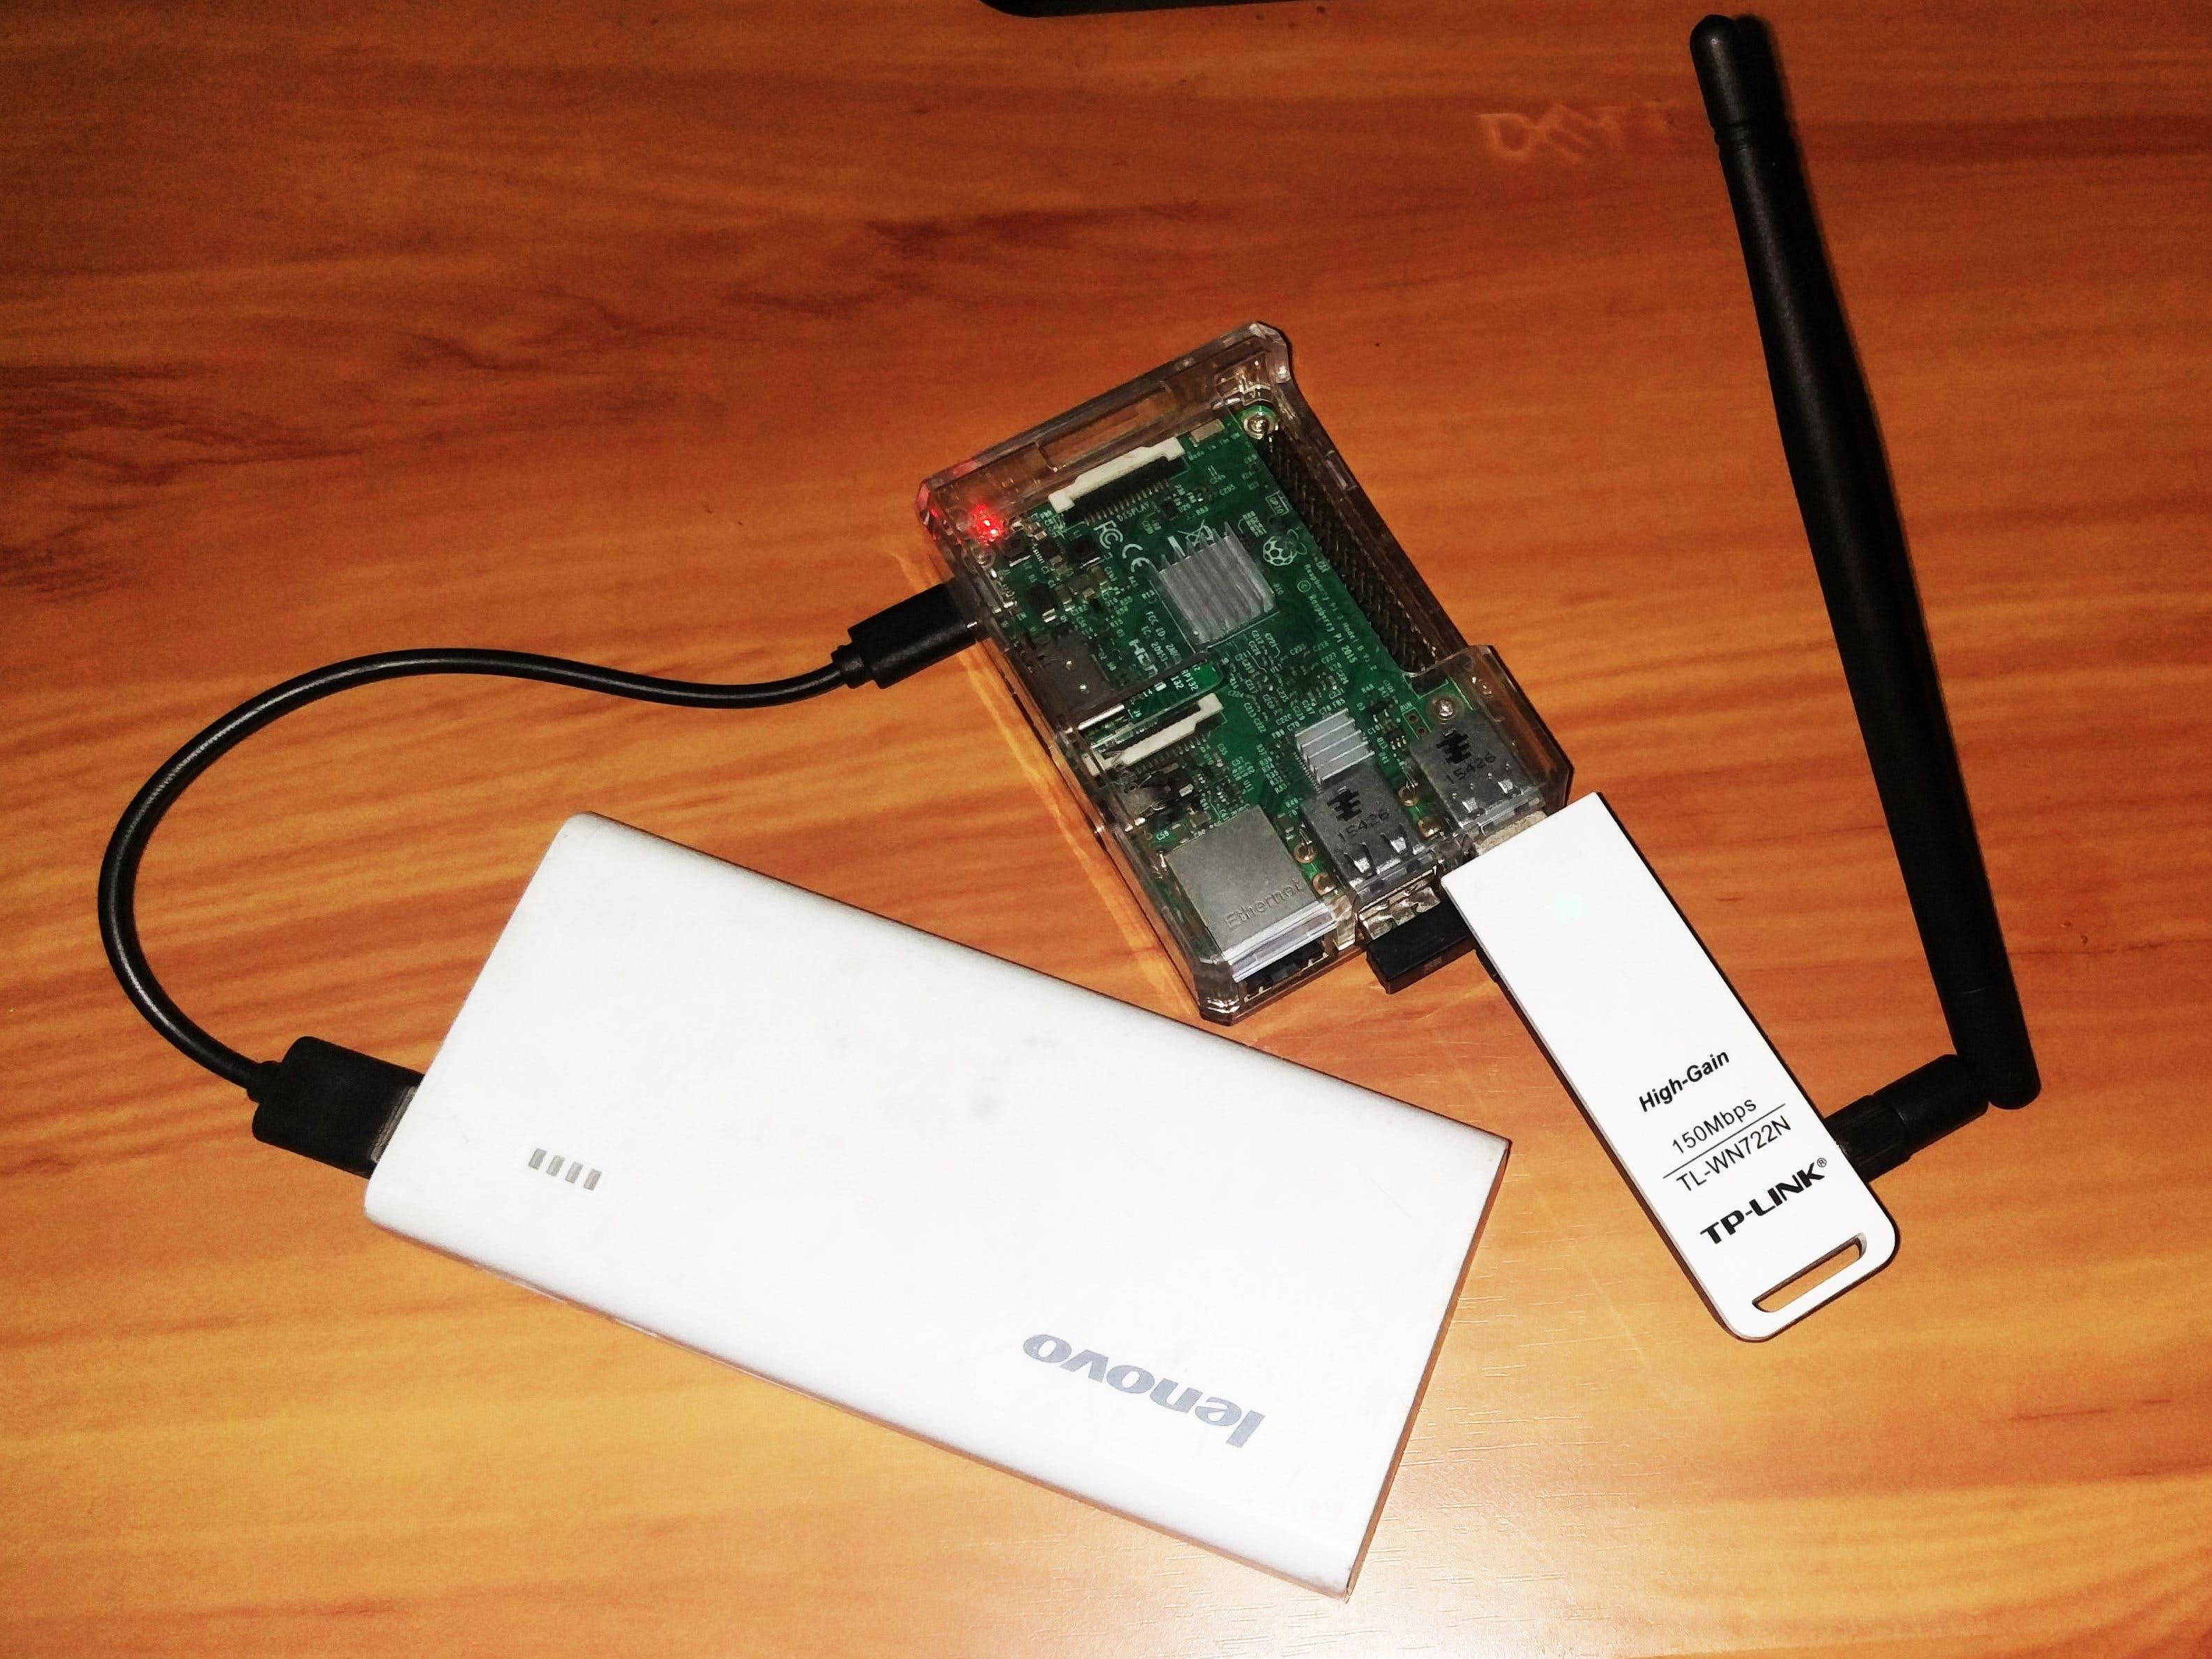 Portable Hacking Station Using Raspberry Pi